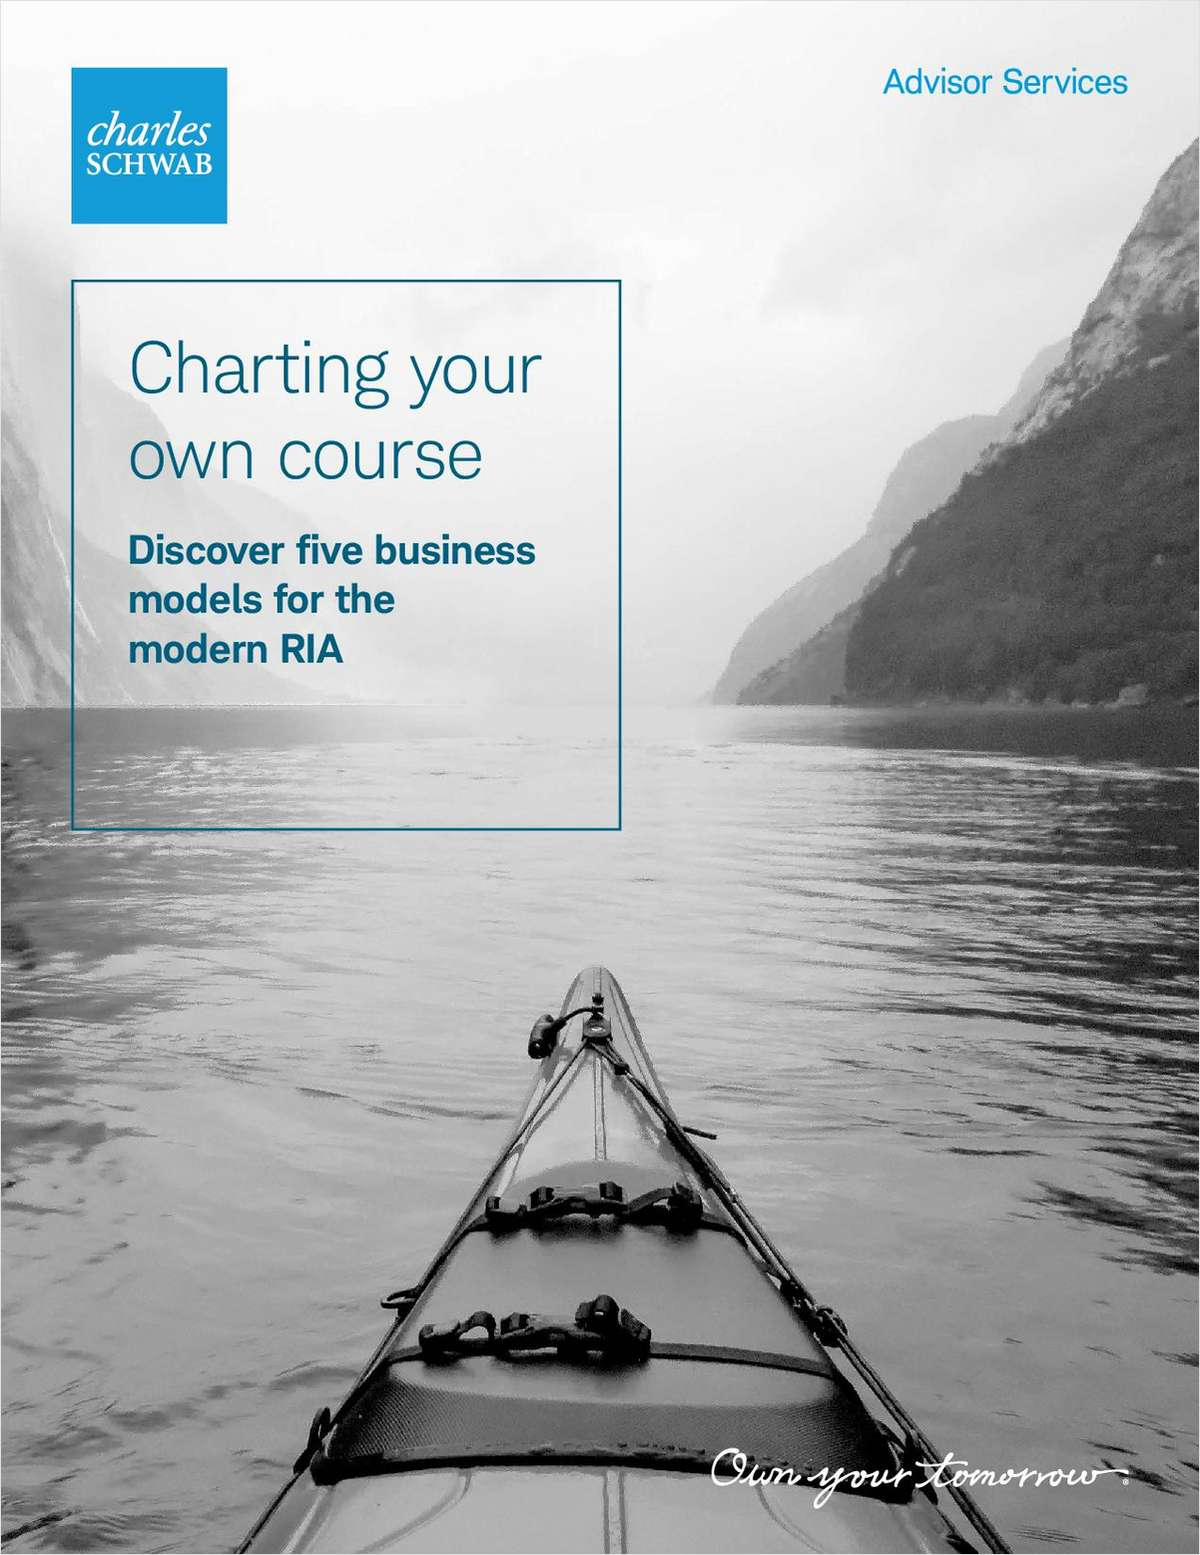 Charting your own course: 5 business models for the modern RIA